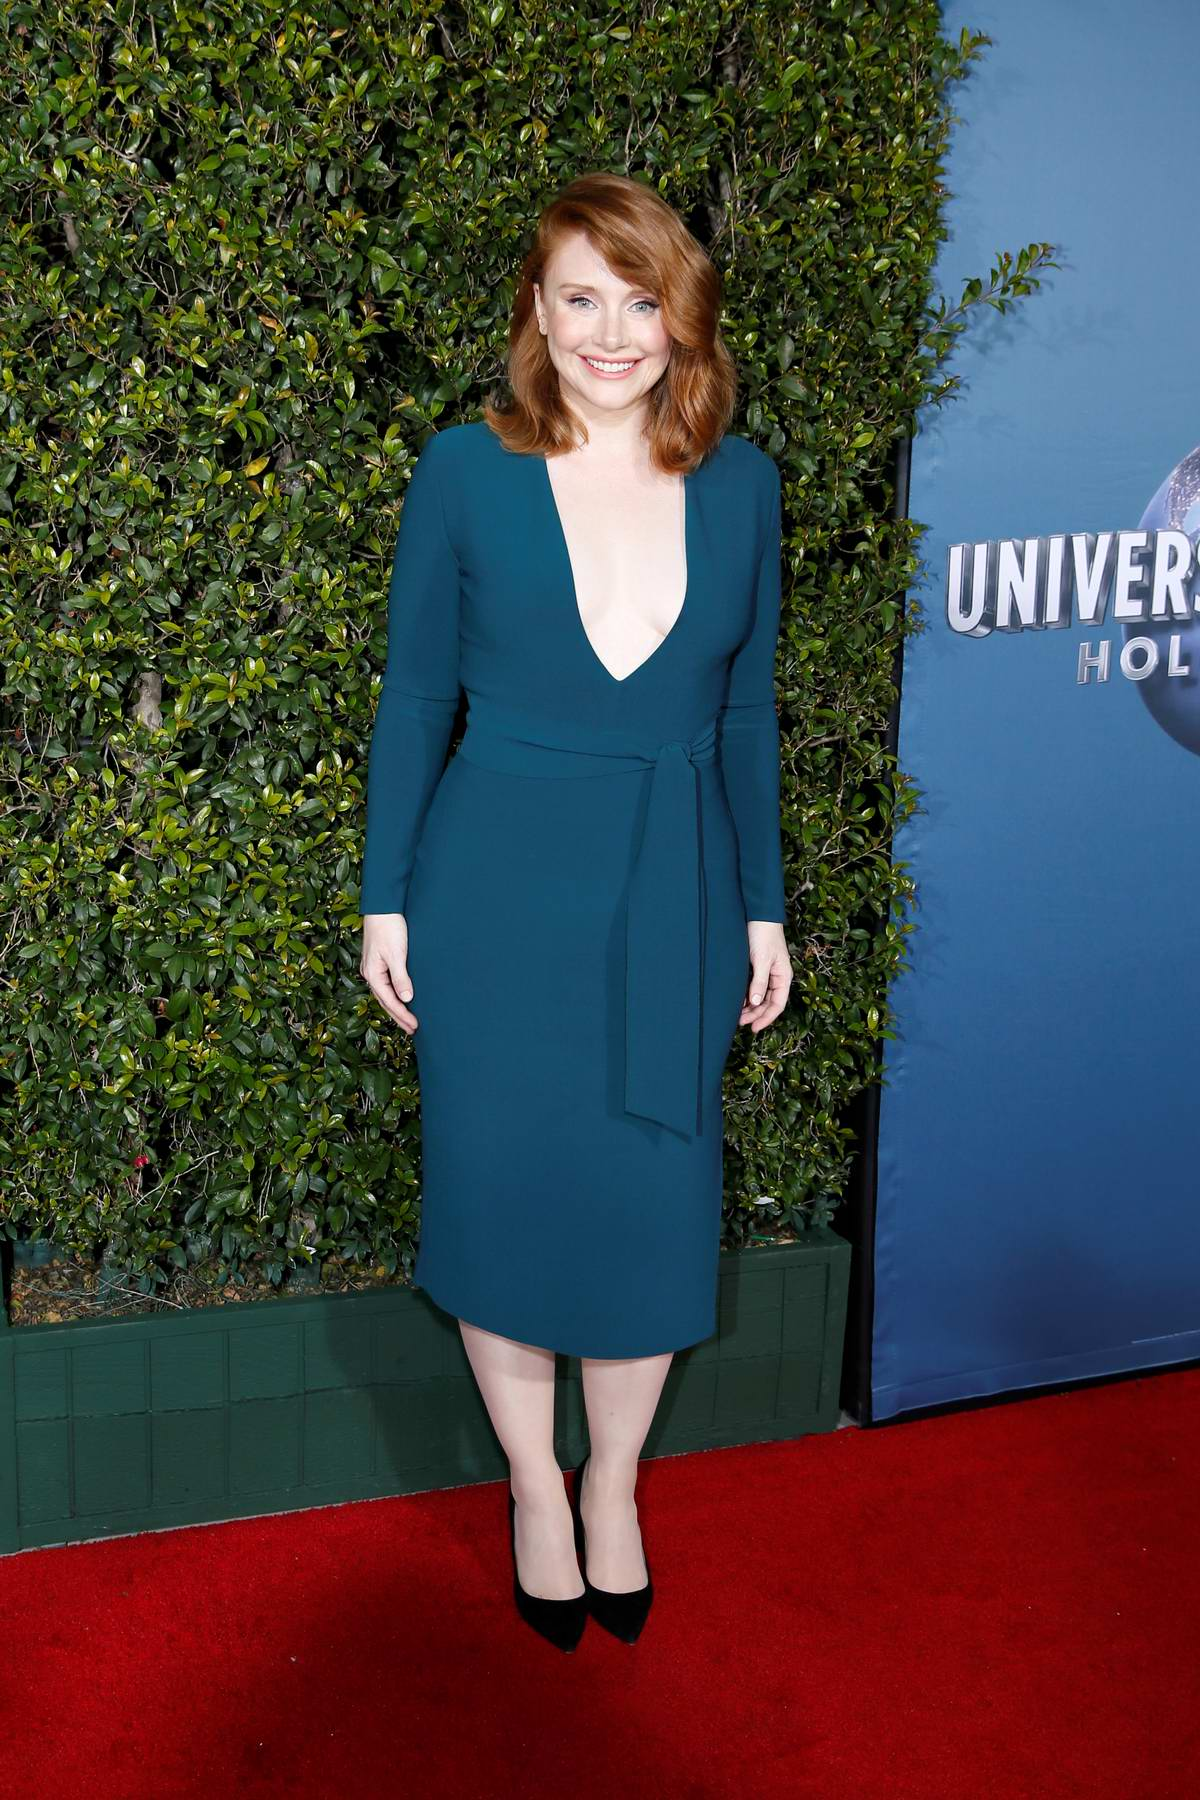 Bryce Dallas Howard attends the grand opening of 'Jurassic World - The Ride' at Universal Studios in Los Angeles